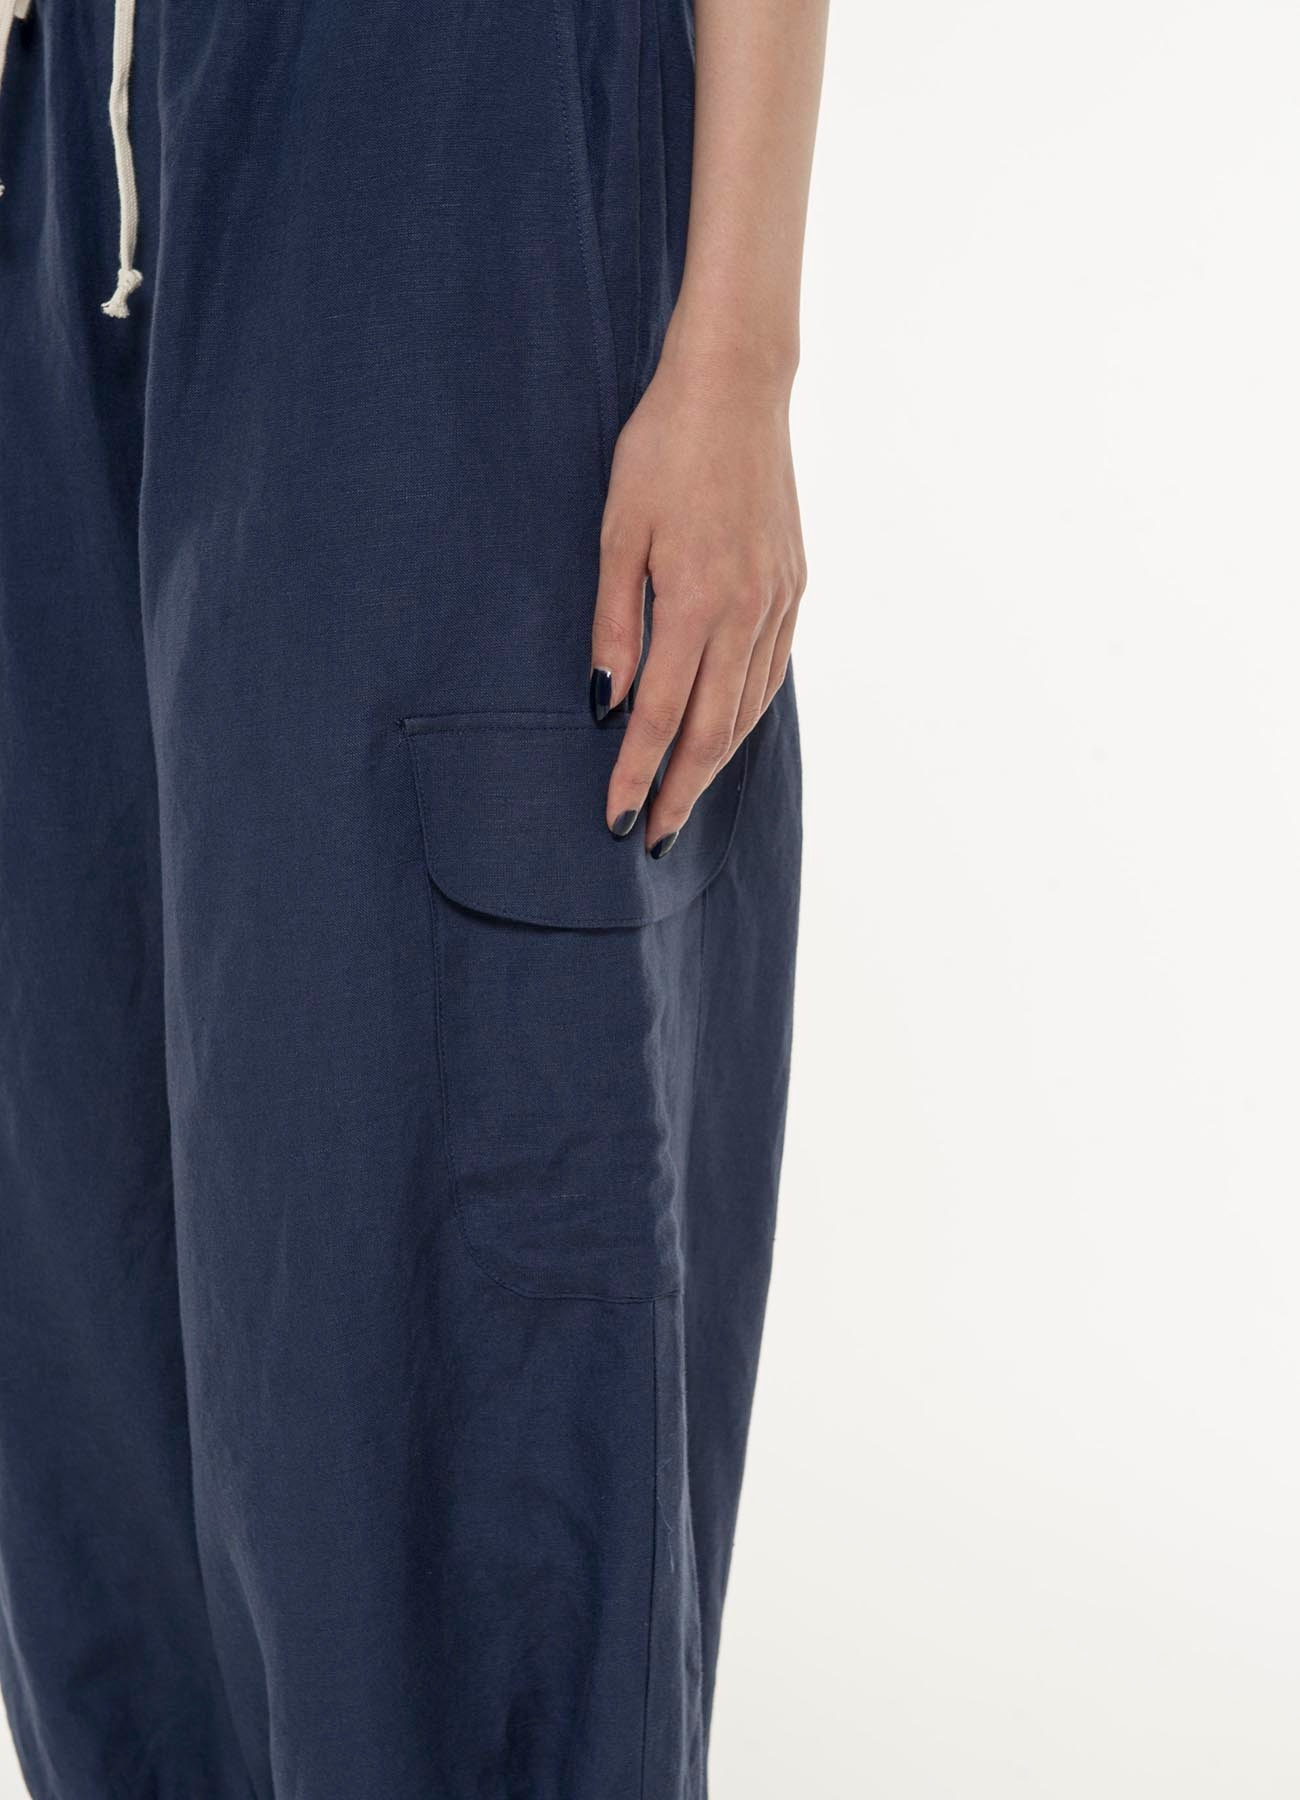 Rayon linen Easy cross Hem lace cropped cargo pants